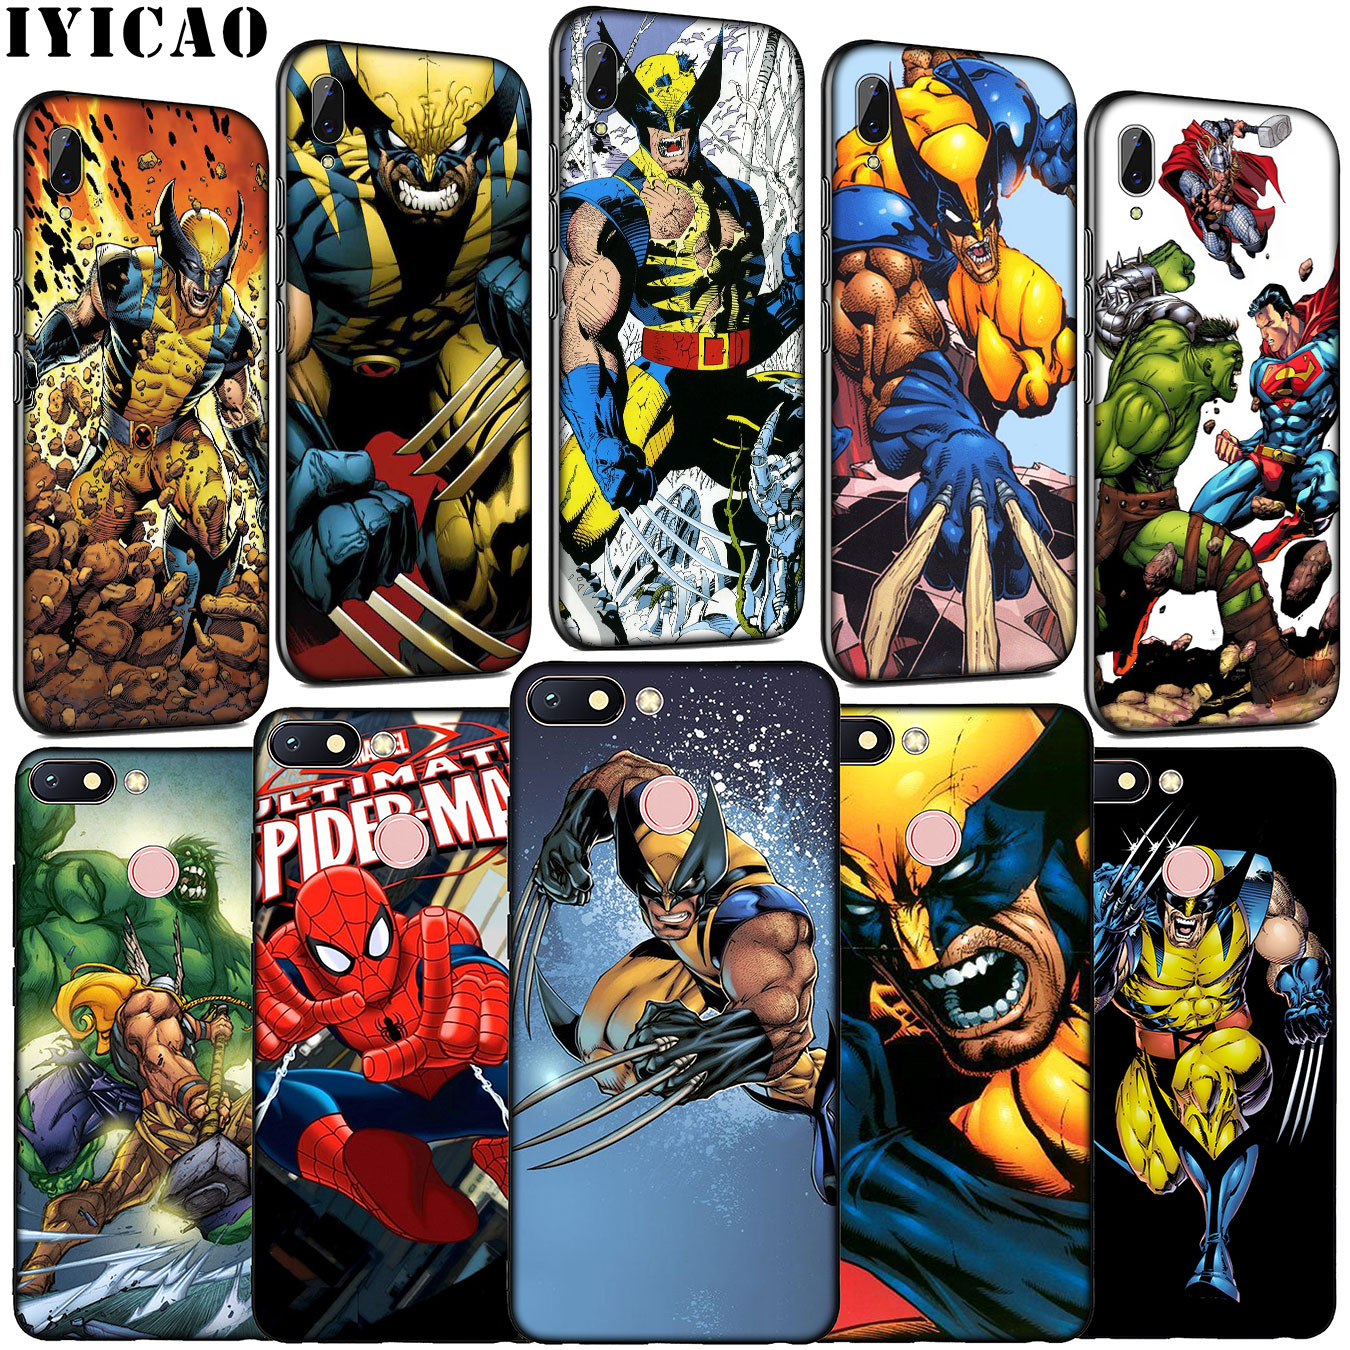 Thor Odinson Marvel Comics Wolverine Soft Silicone Phone Case for Xiaomi Redmi K20 GO 8A 7A 6A 5A 4A 4X Note 8 7 6 Pro 5 Plus image